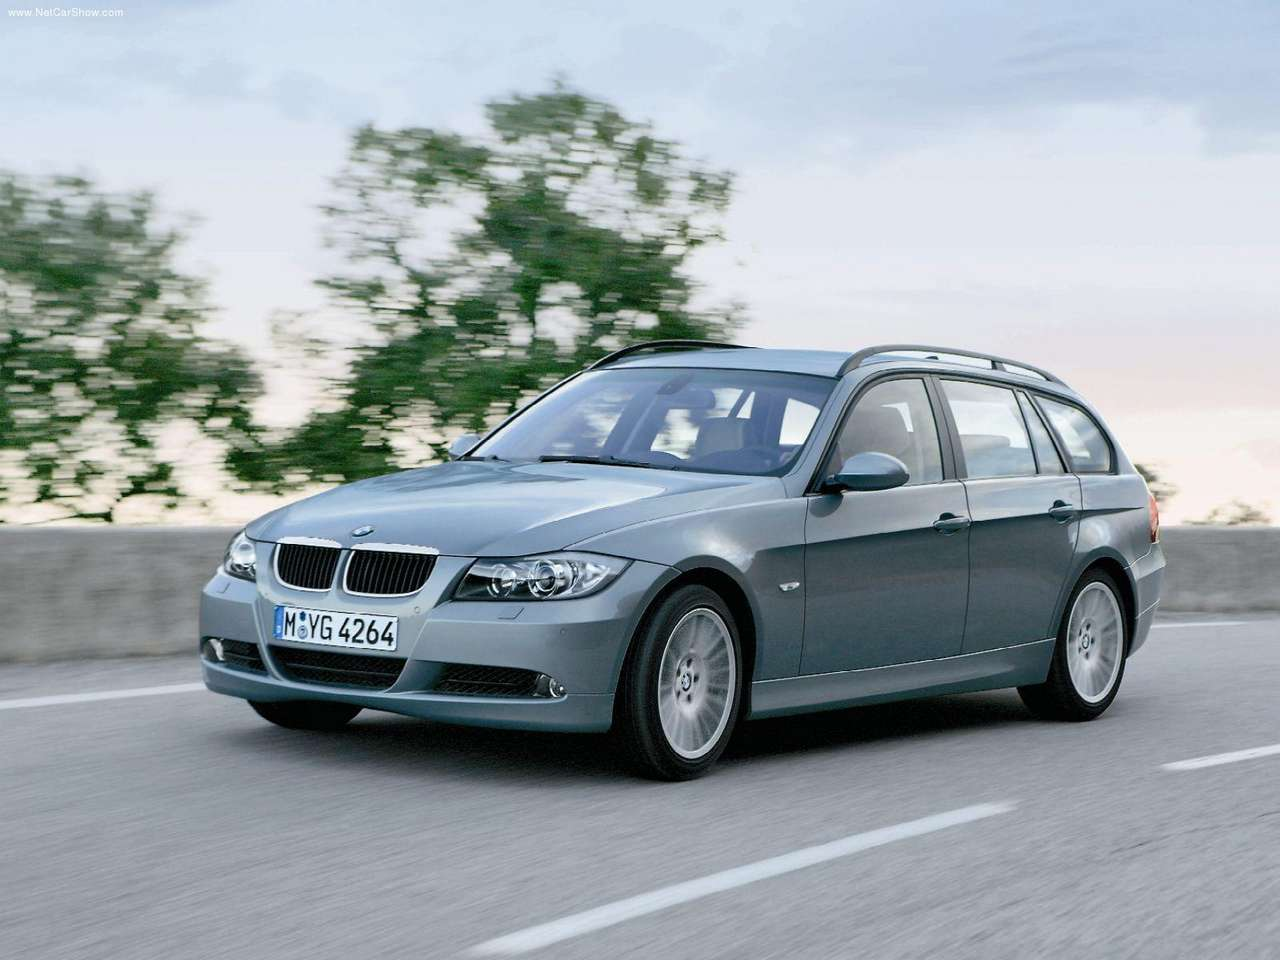 2005 bmw 320d touring. Black Bedroom Furniture Sets. Home Design Ideas